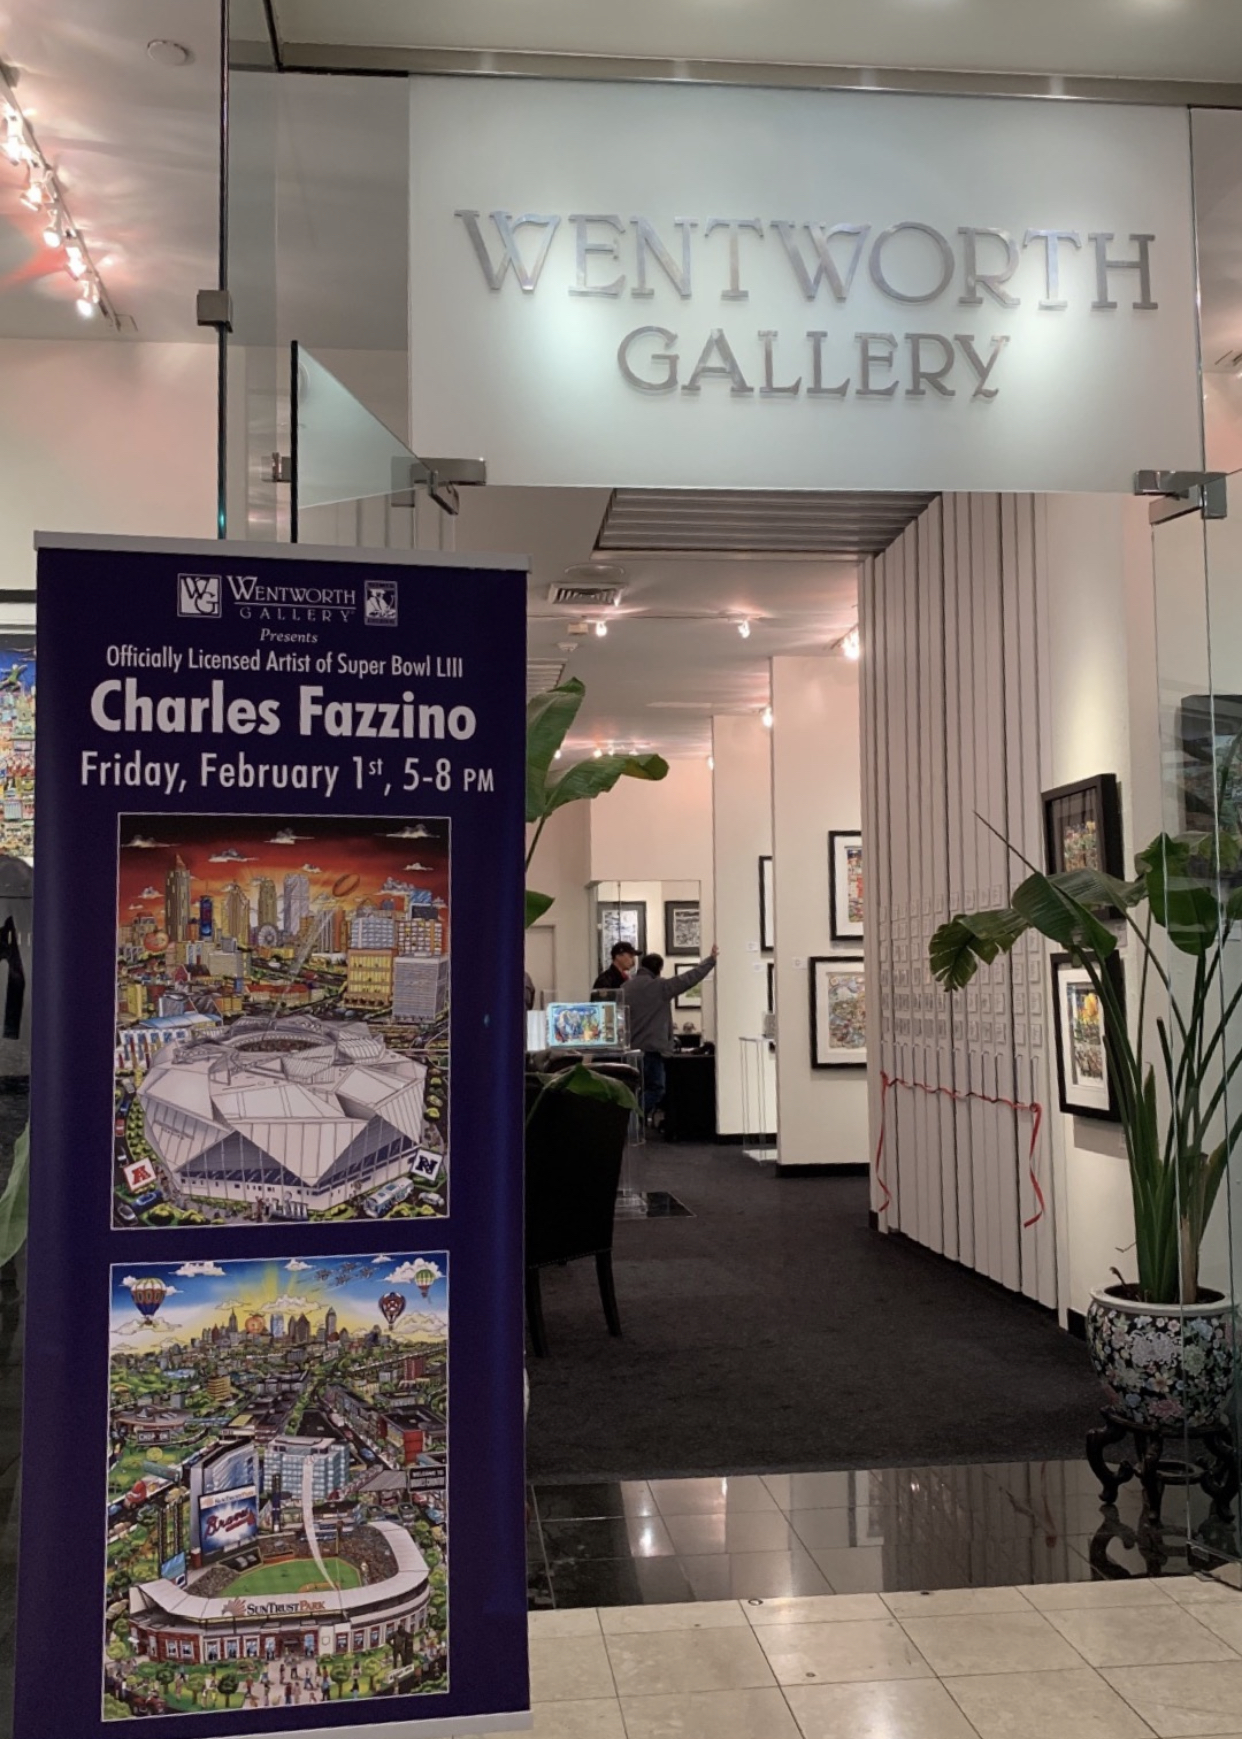 A view from outside the Wentworth Gallery looking in at artwork by Charles Fazzino